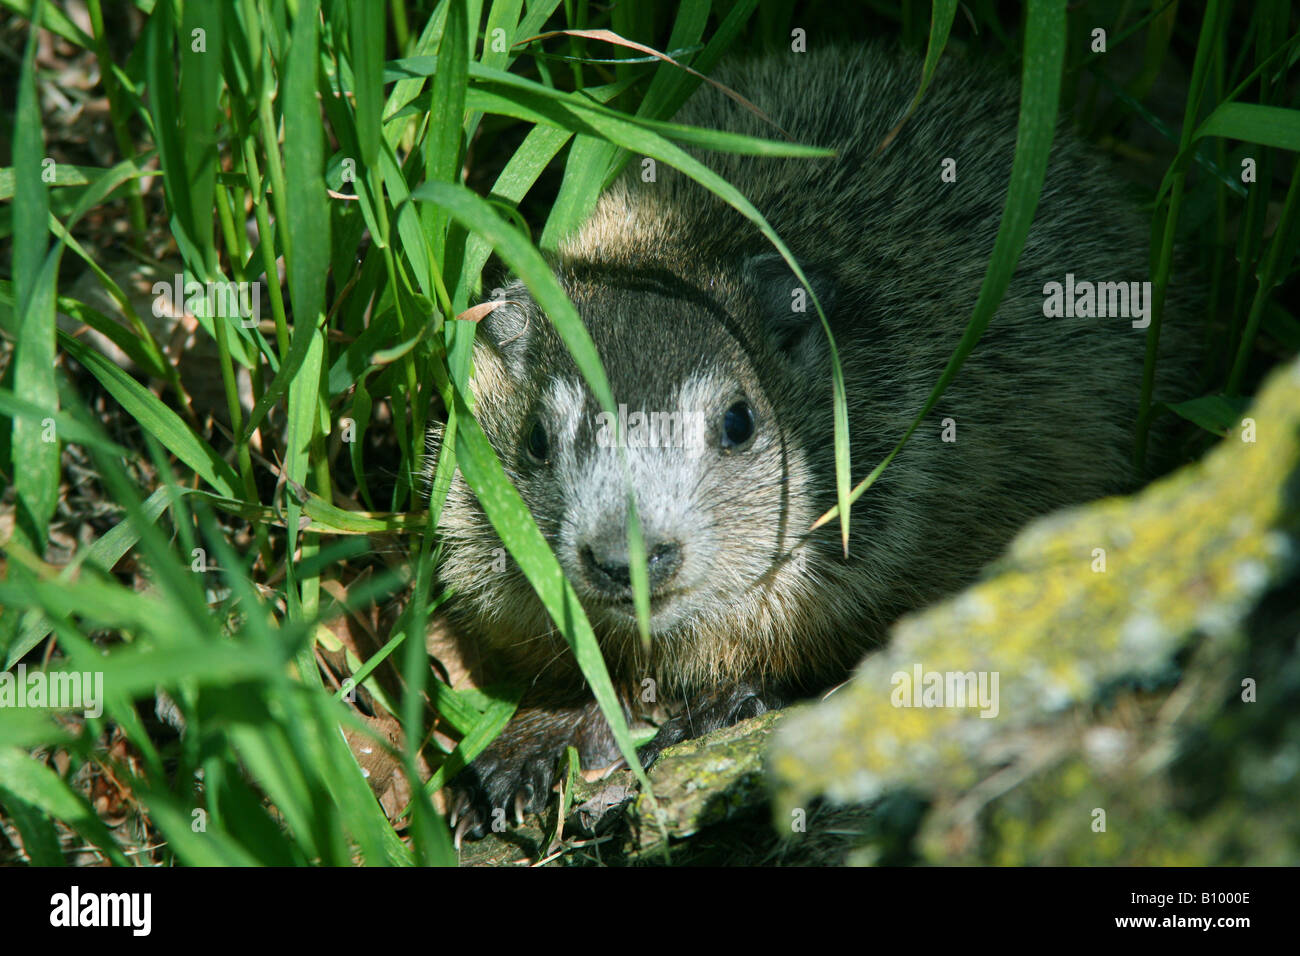 Baby Groundhog or Woodchuck Marmota monax in den entrance Eastern North America - Stock Image